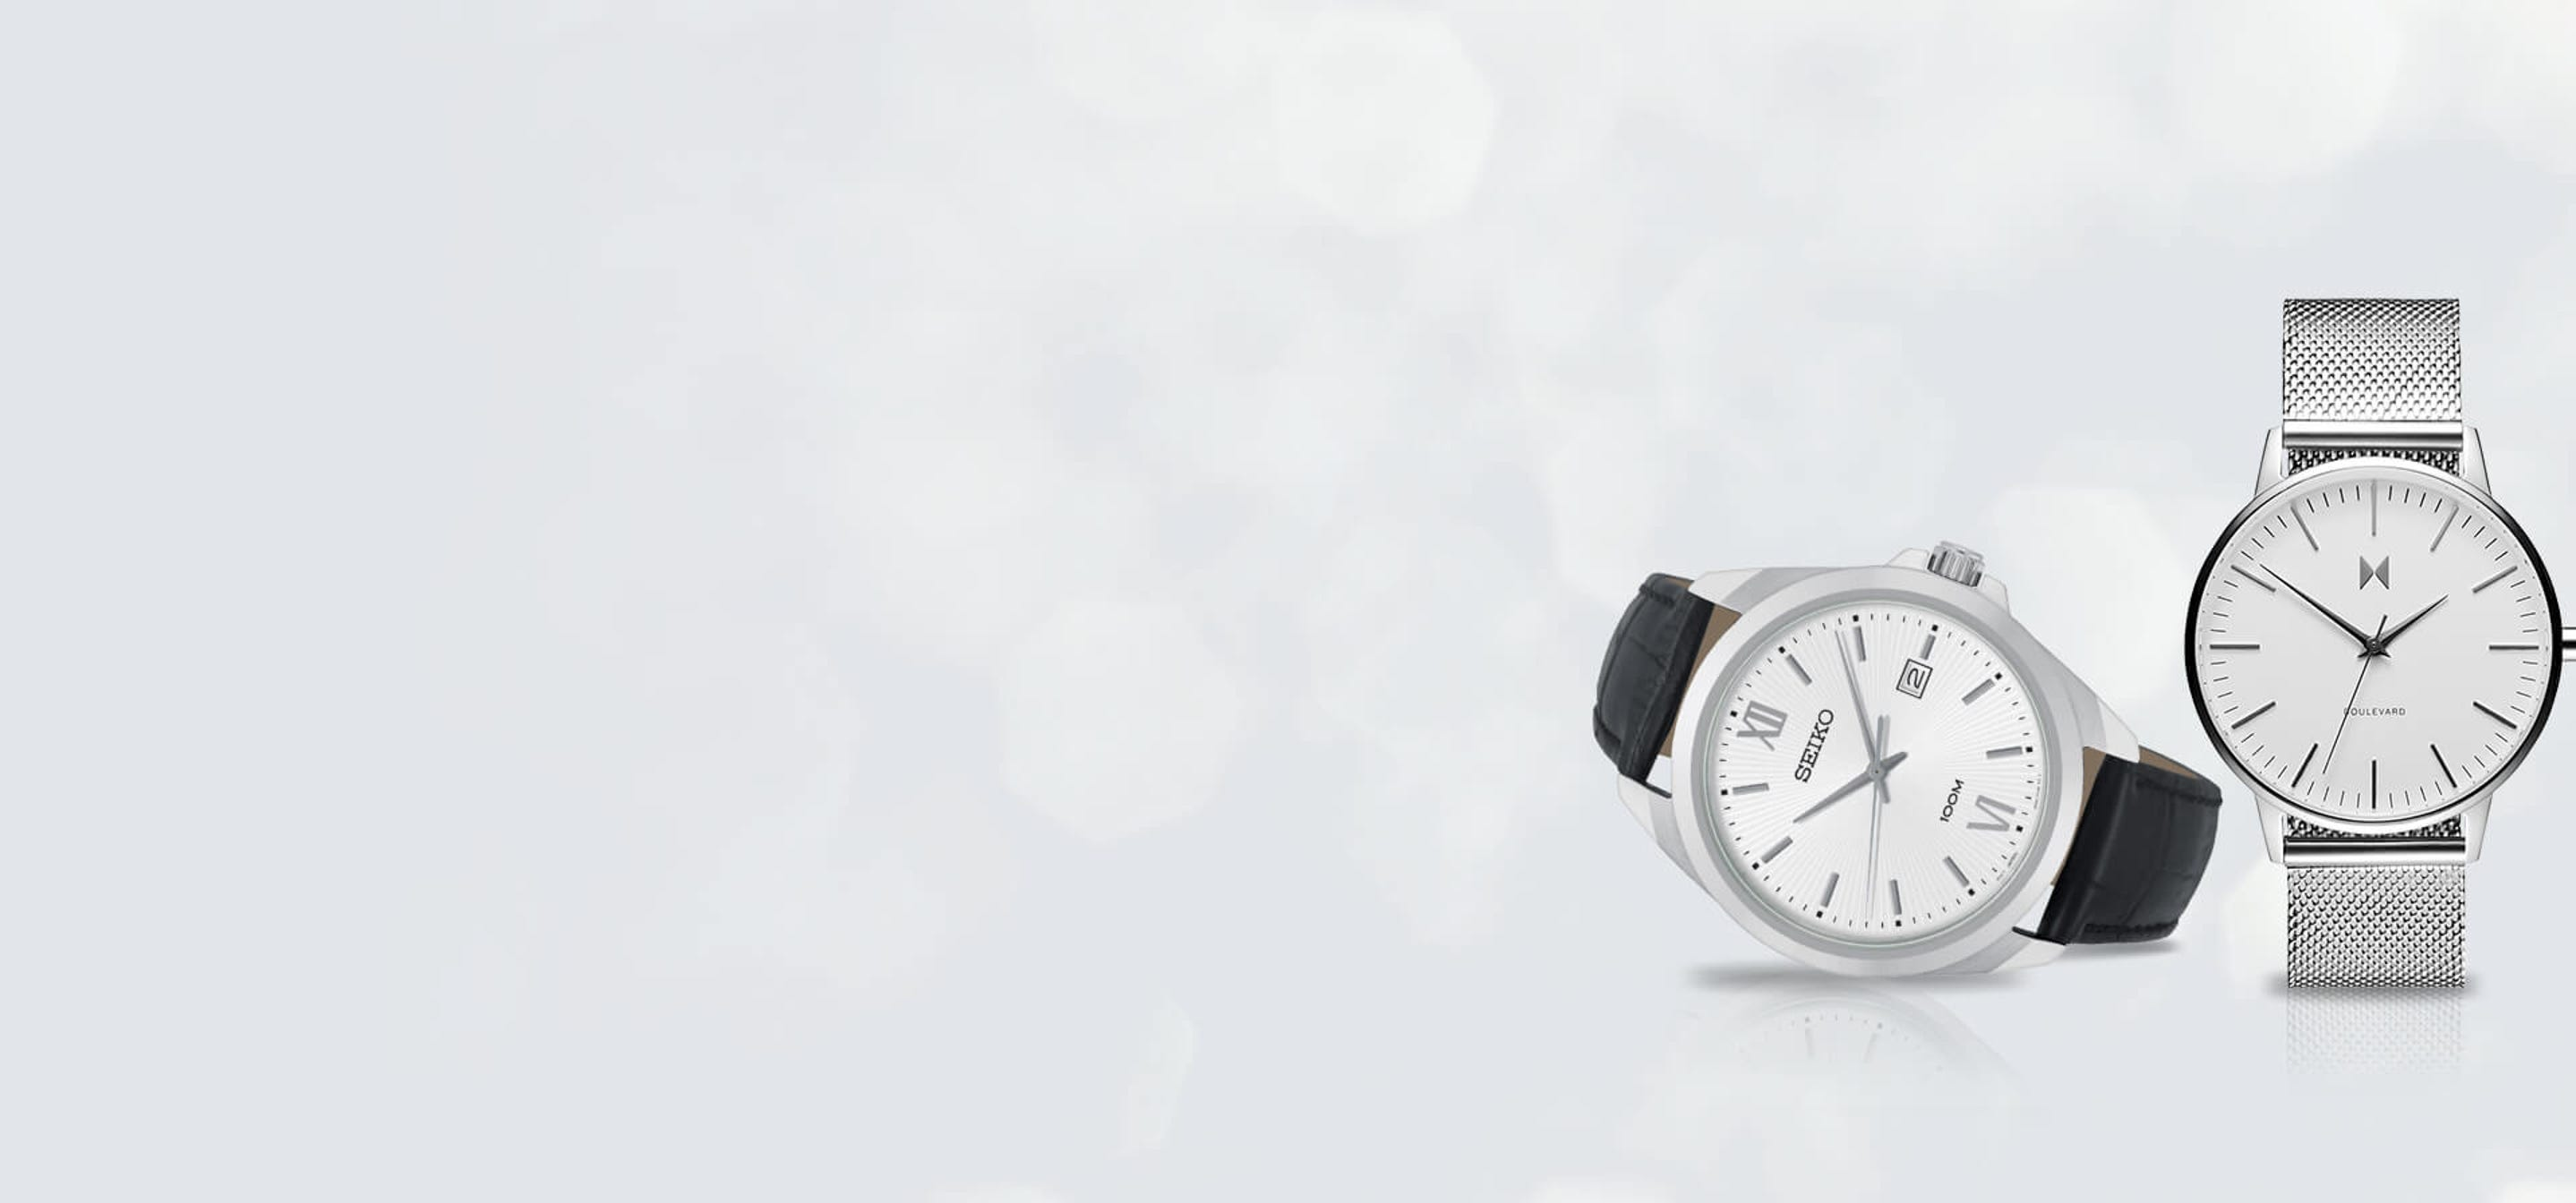 Watches - Best & Stylish Watches   Best Buy Canada